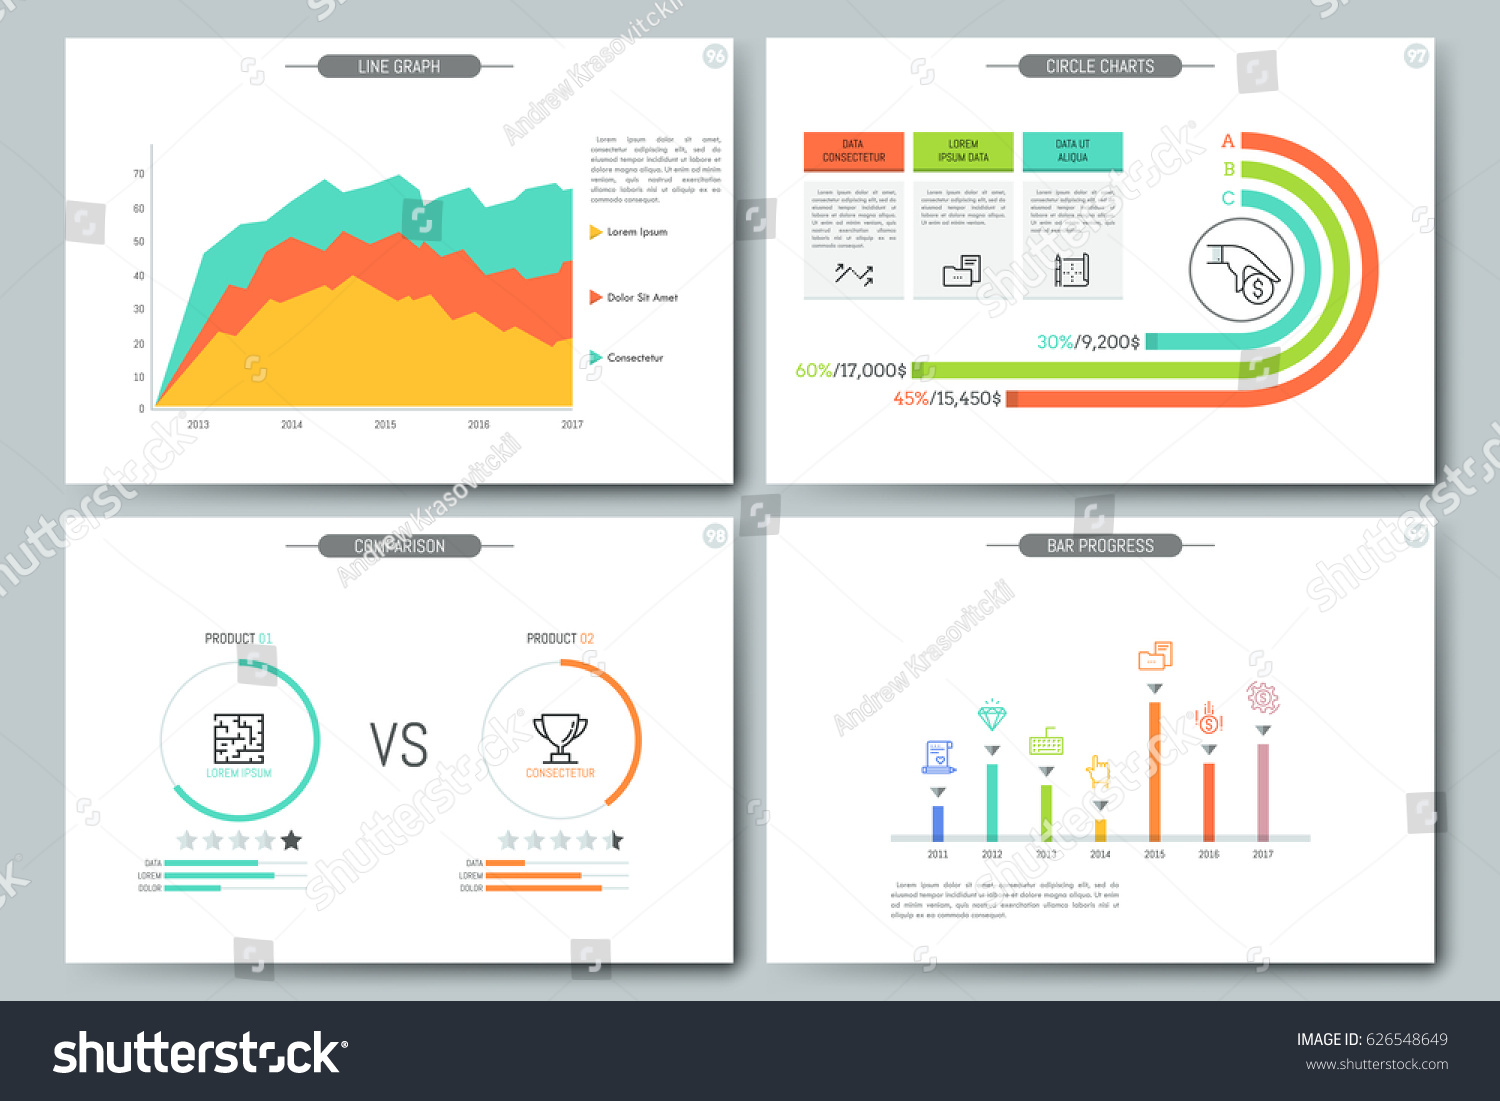 Minimal Infographic Brochure Template Pages Comparison Stock ...